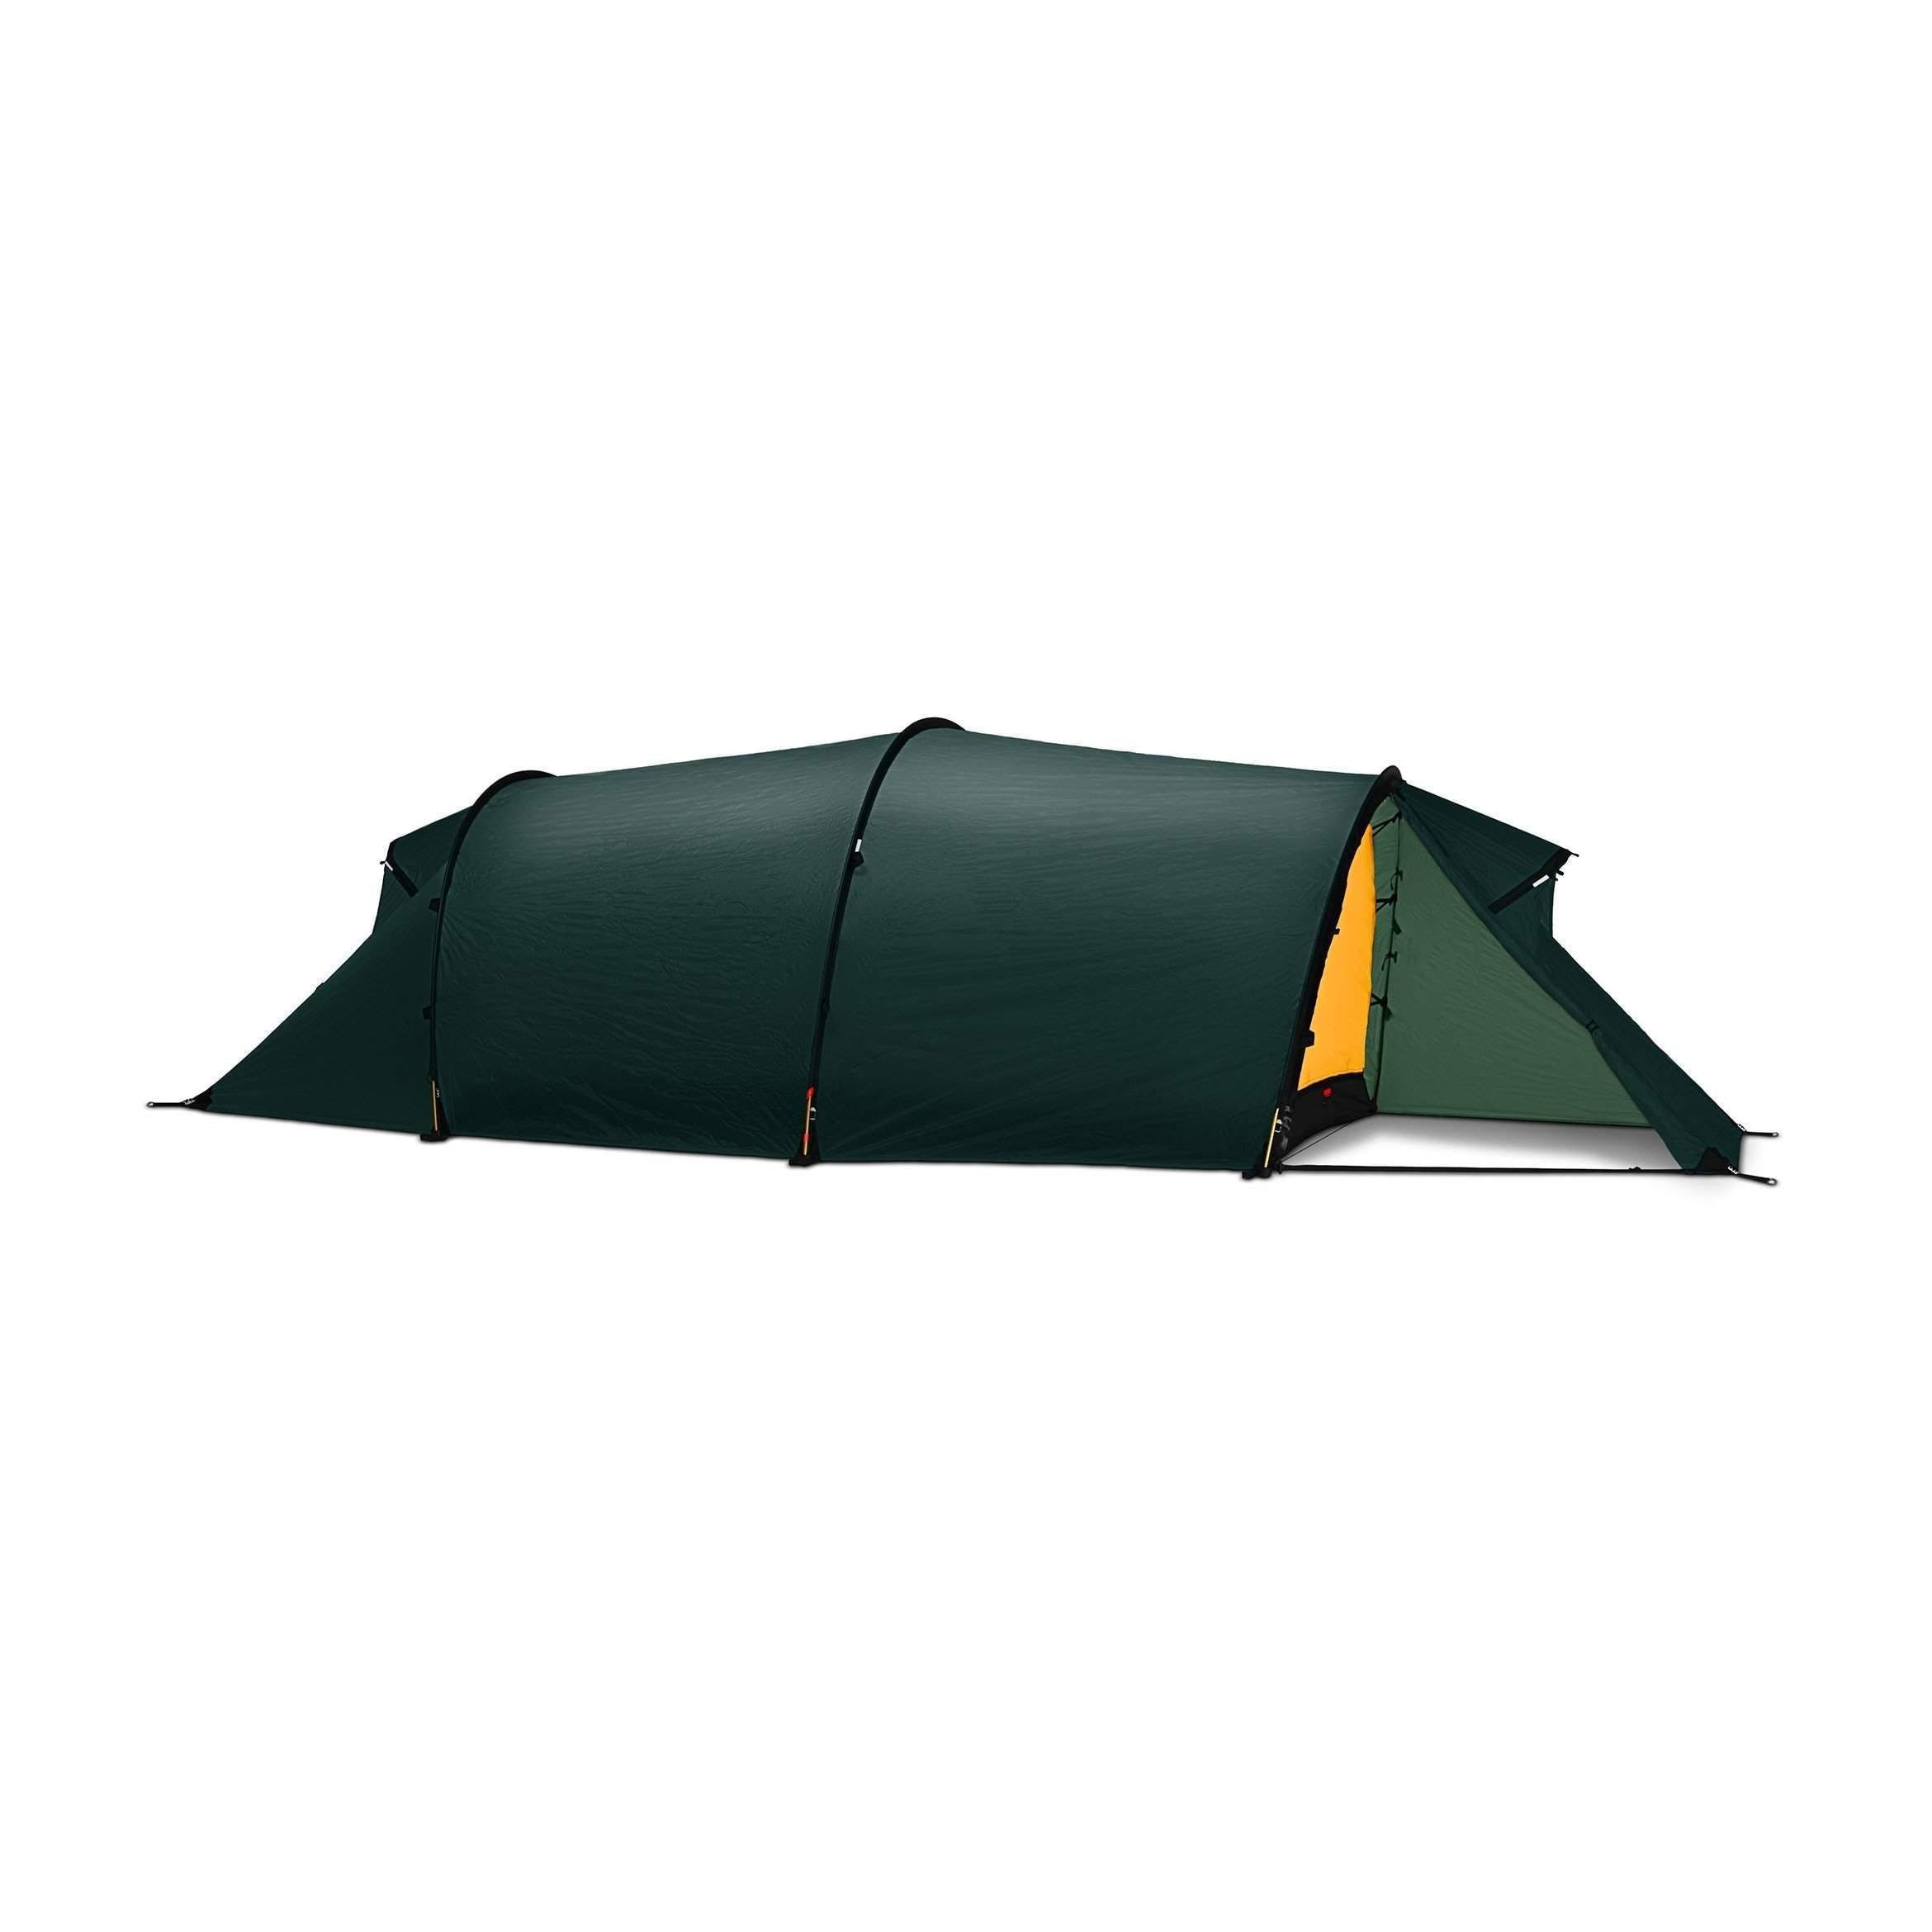 Hilleberg Kaitum 2 Person Tent-Green/2 Person-2 Person